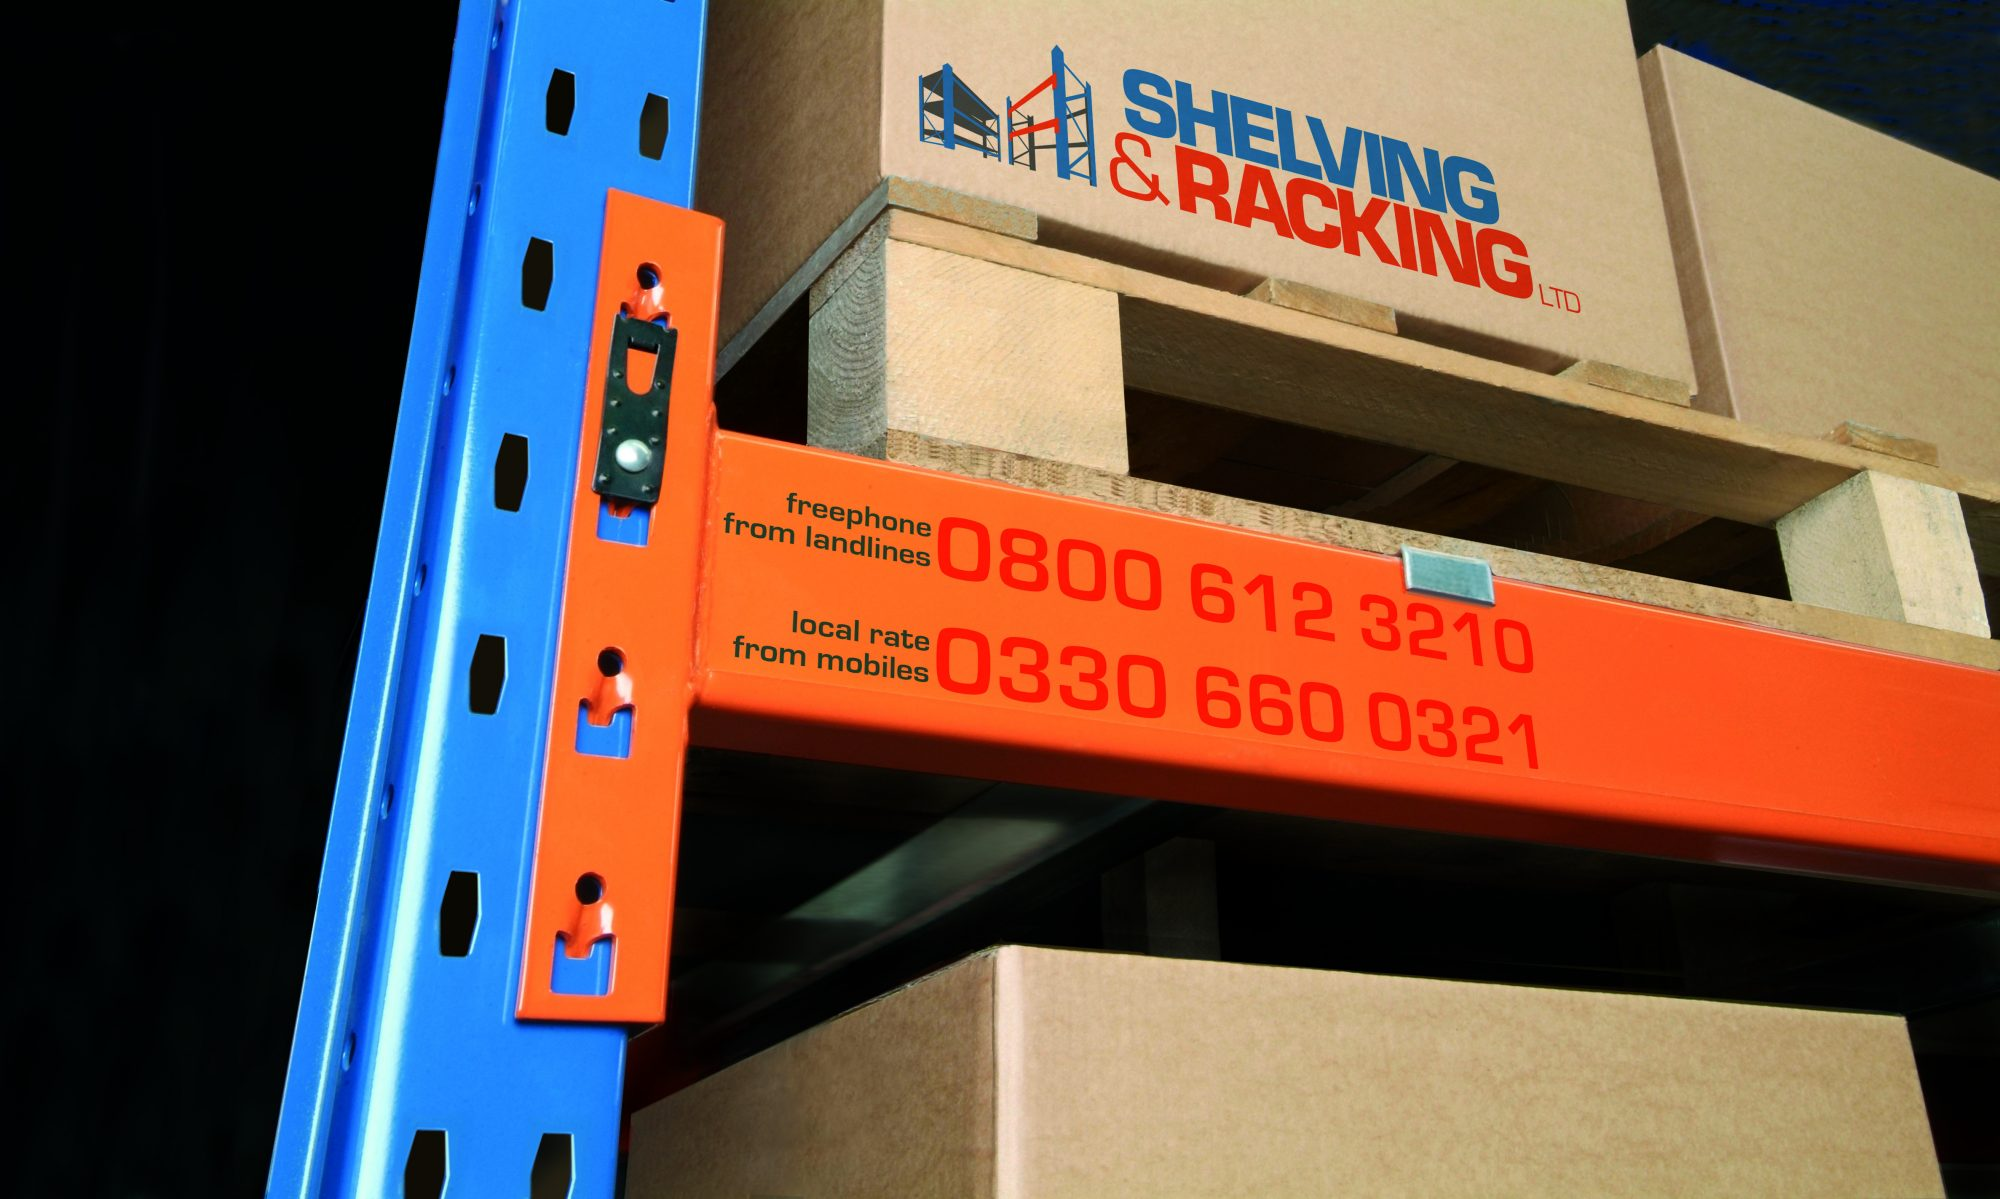 U.S.E. Shelving & Racking